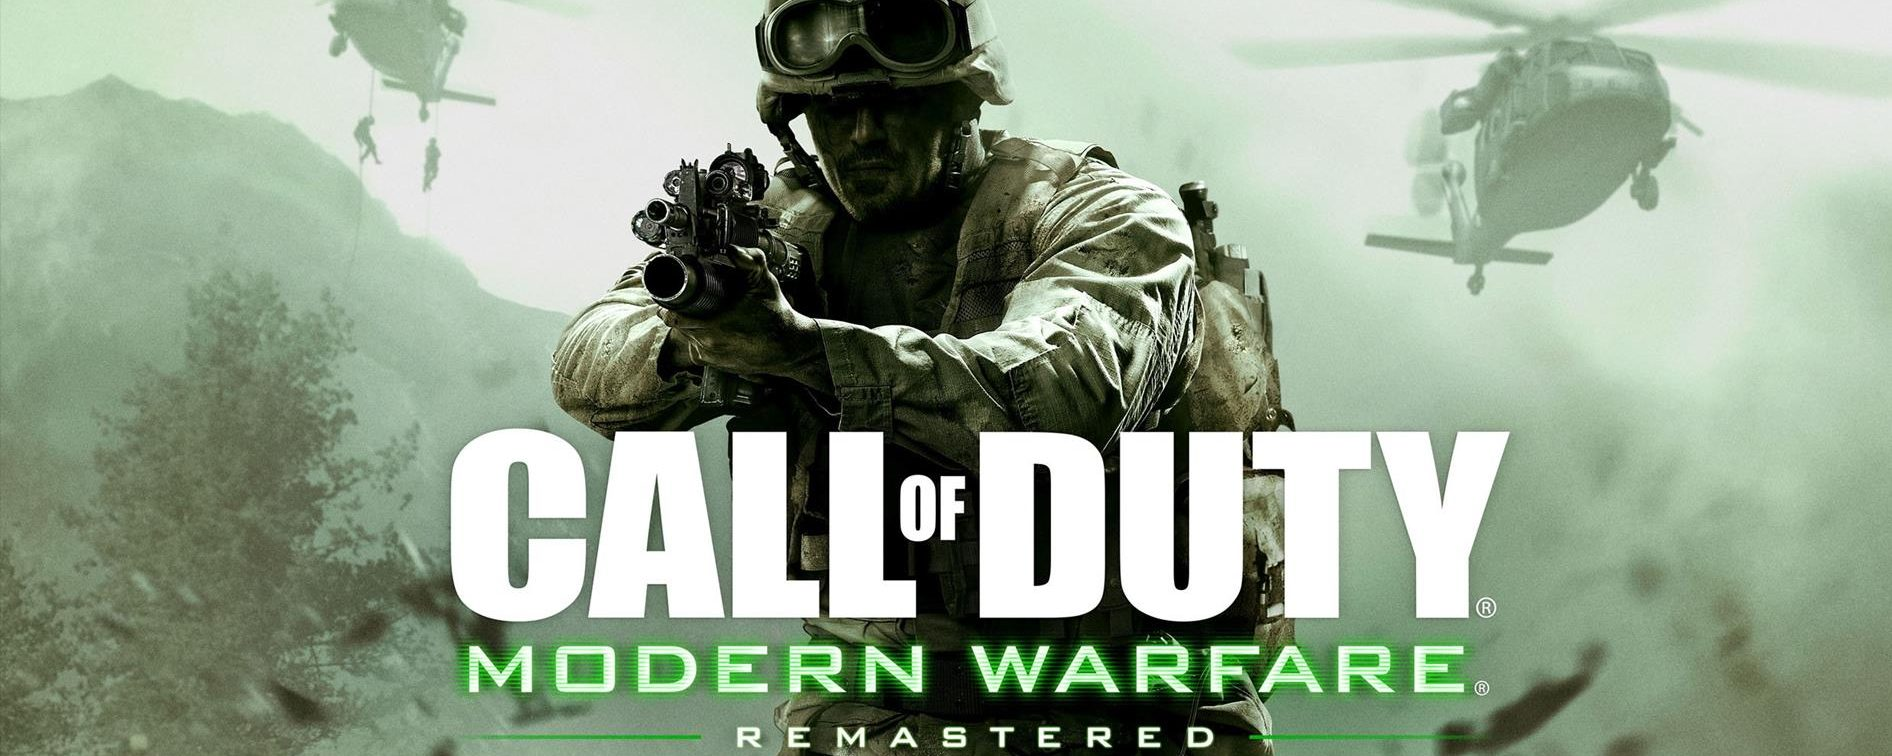 Call of Duty: Modern Warfare Remastered is only playable with Infinite Warfare disc inserted